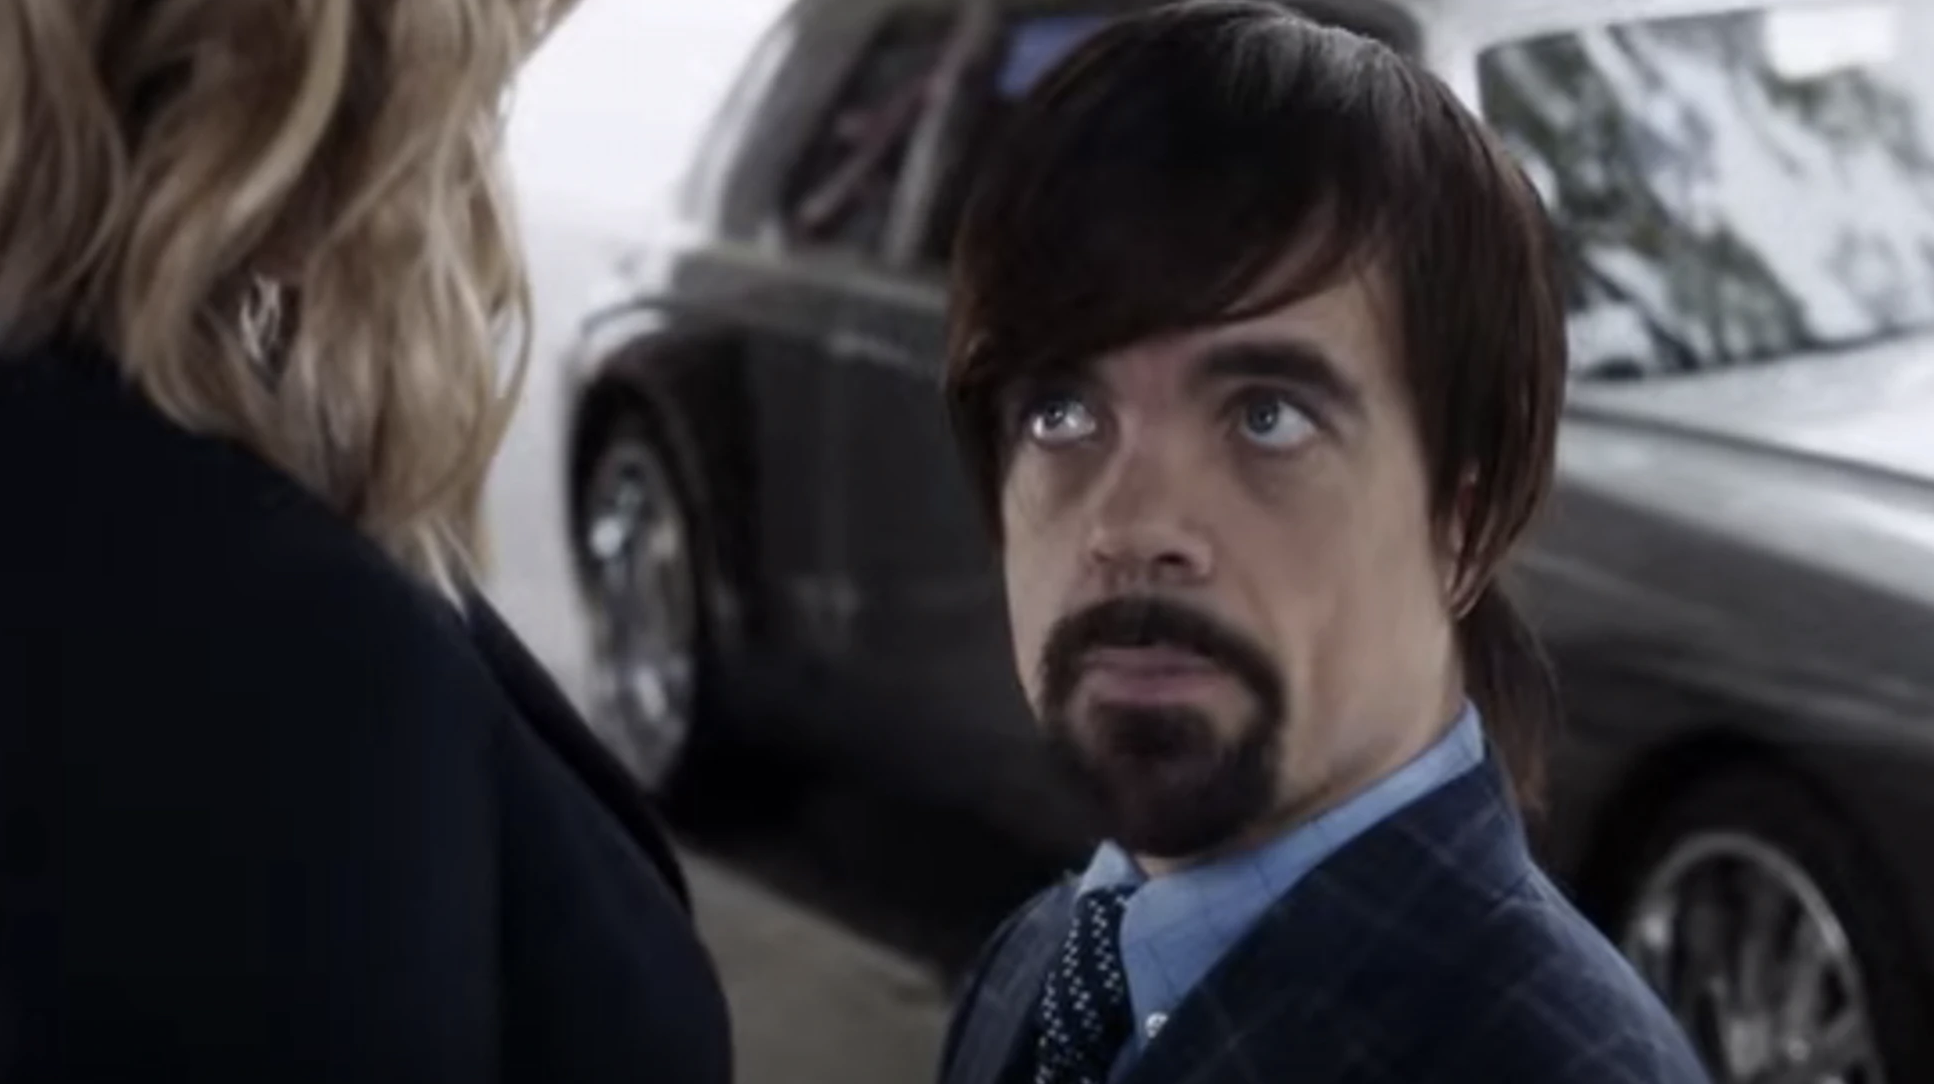 Peter Dinklage in a wig with long bangs that swoop to one side